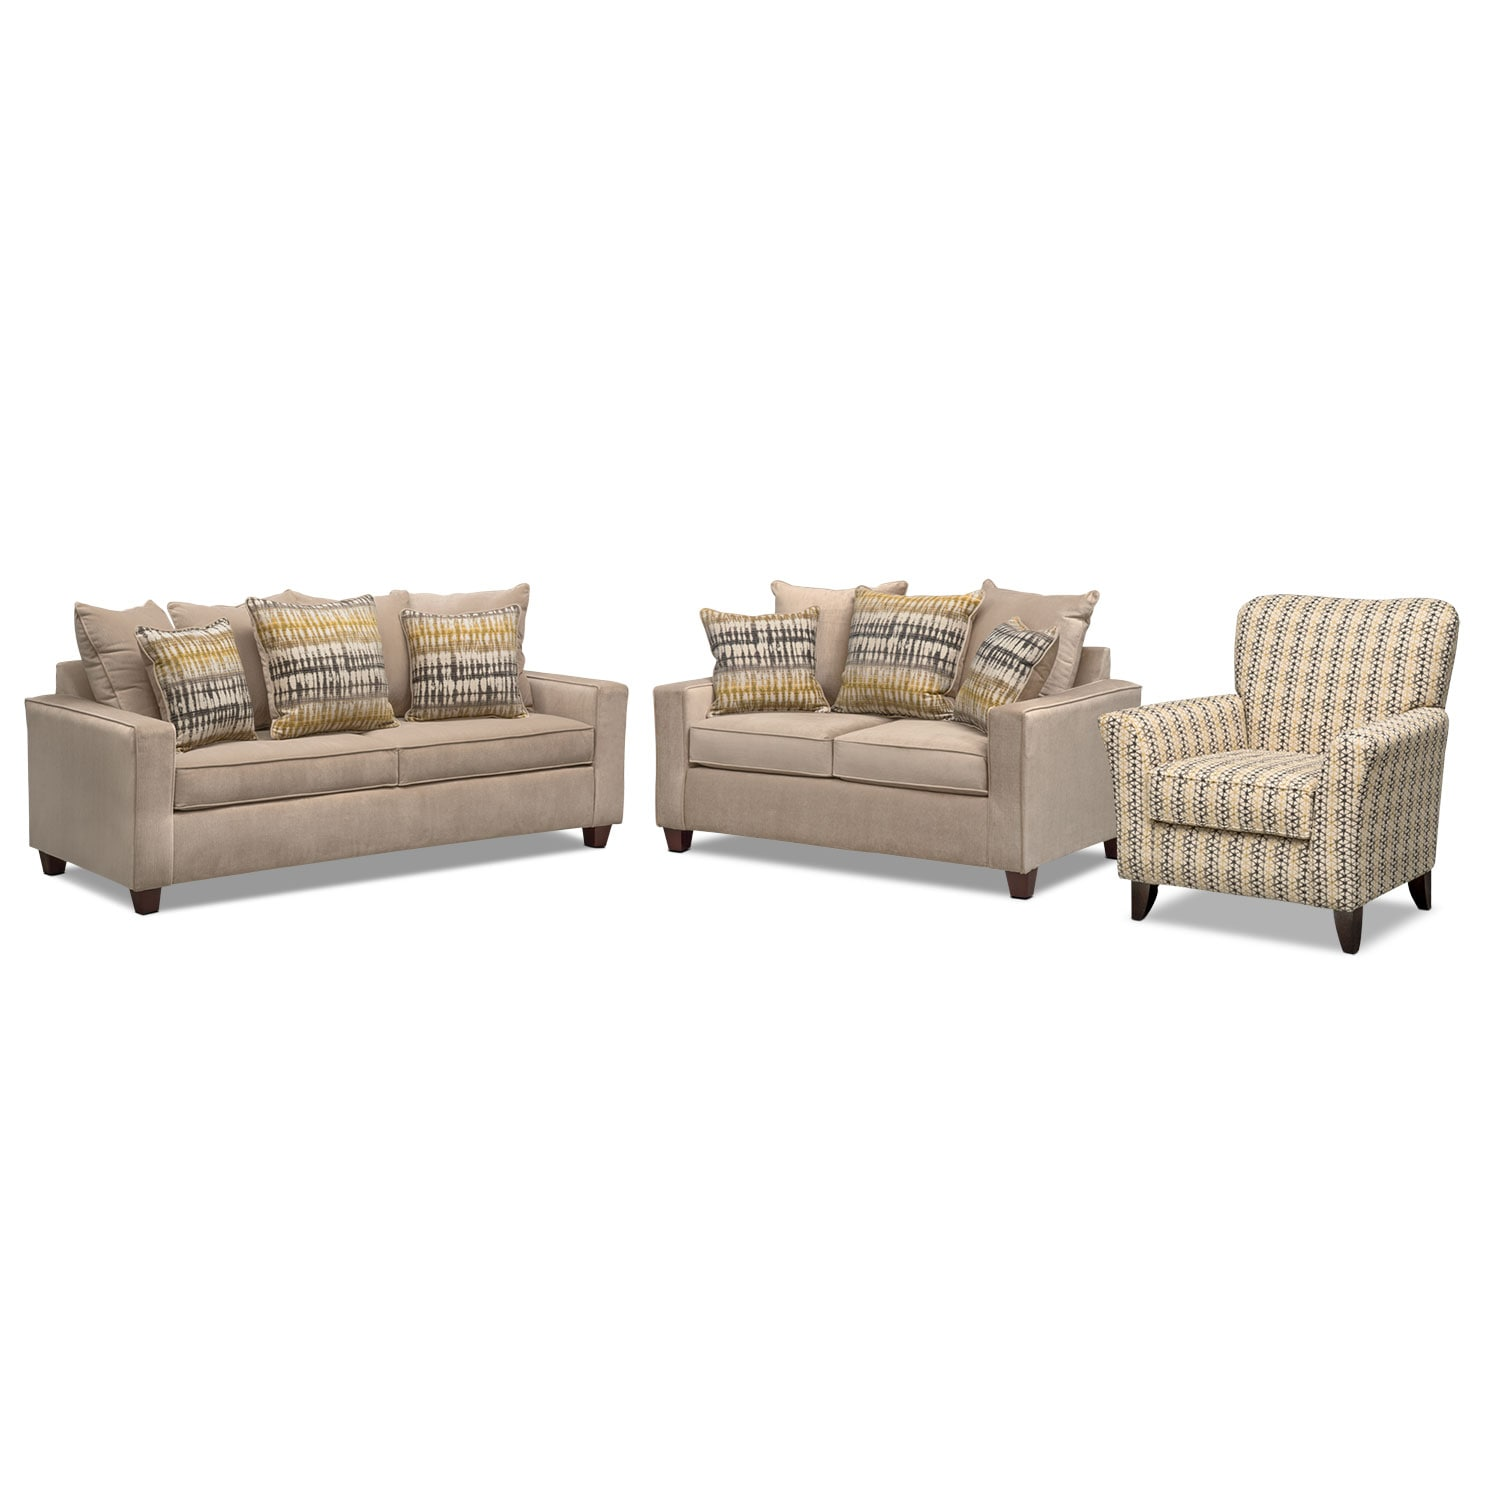 queen memory foam sleeper sofa loveseat and accent chair set beige